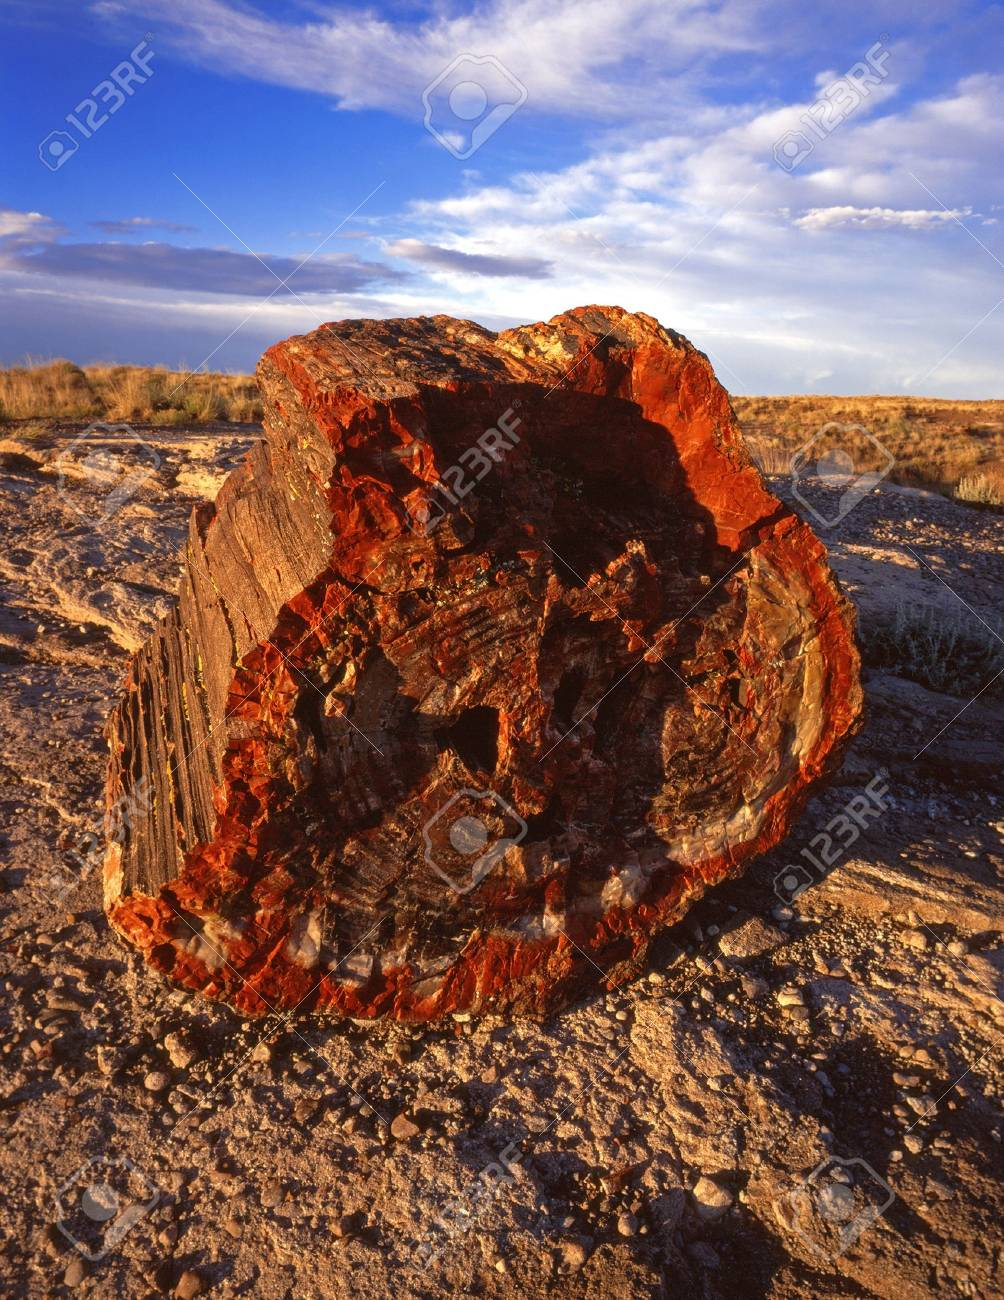 Part of a petrified tree in Petrified Forest National Park, Arizona. Stock Photo - 814680